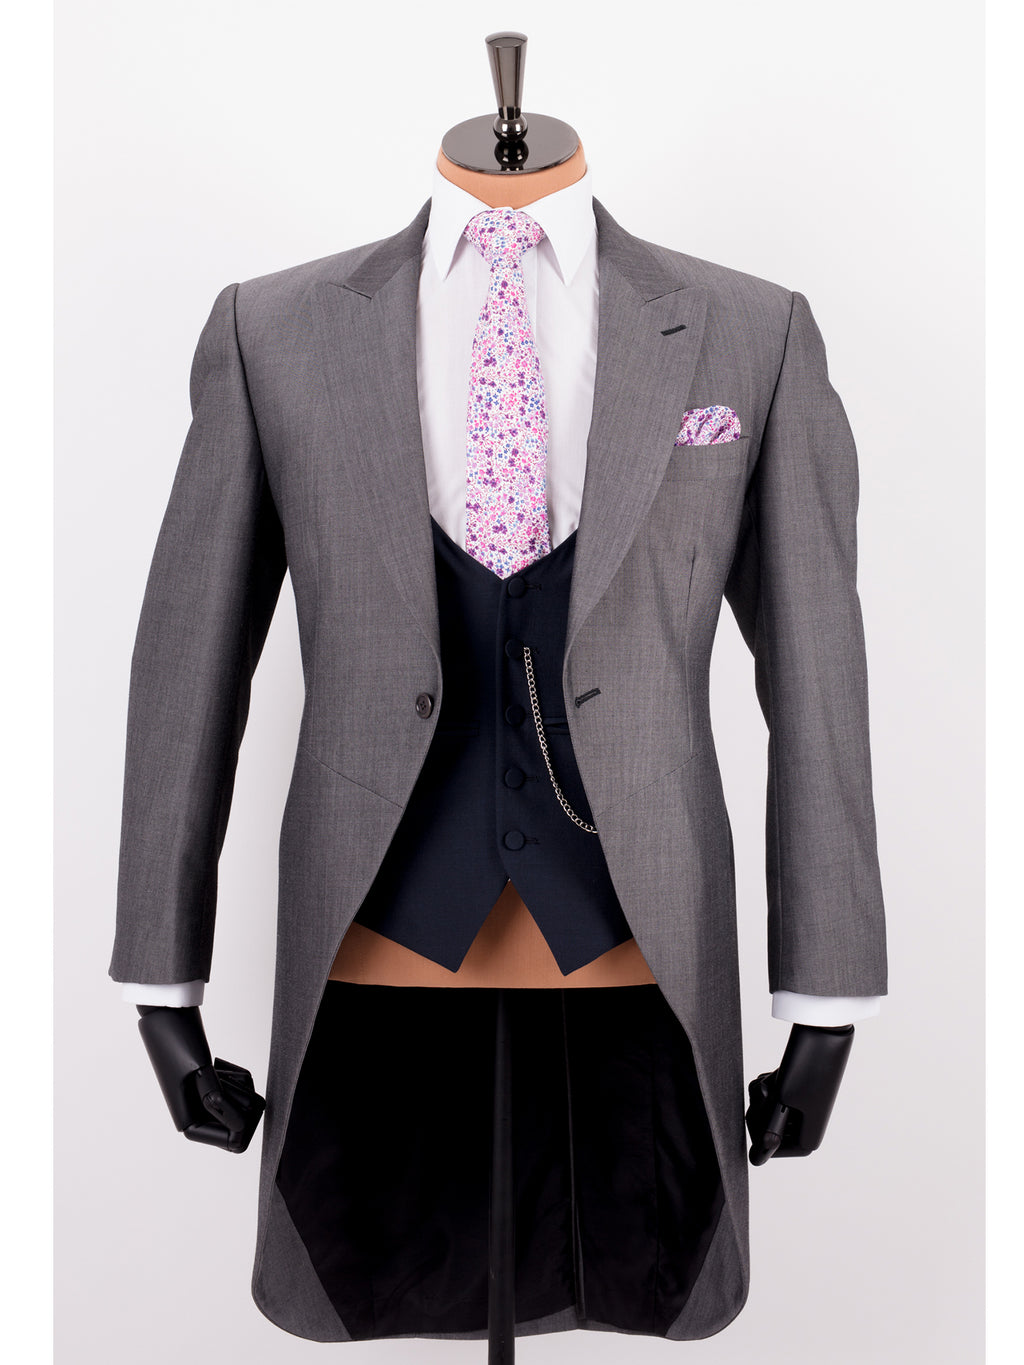 Grey Mohair Tailcoat Wedding Suit